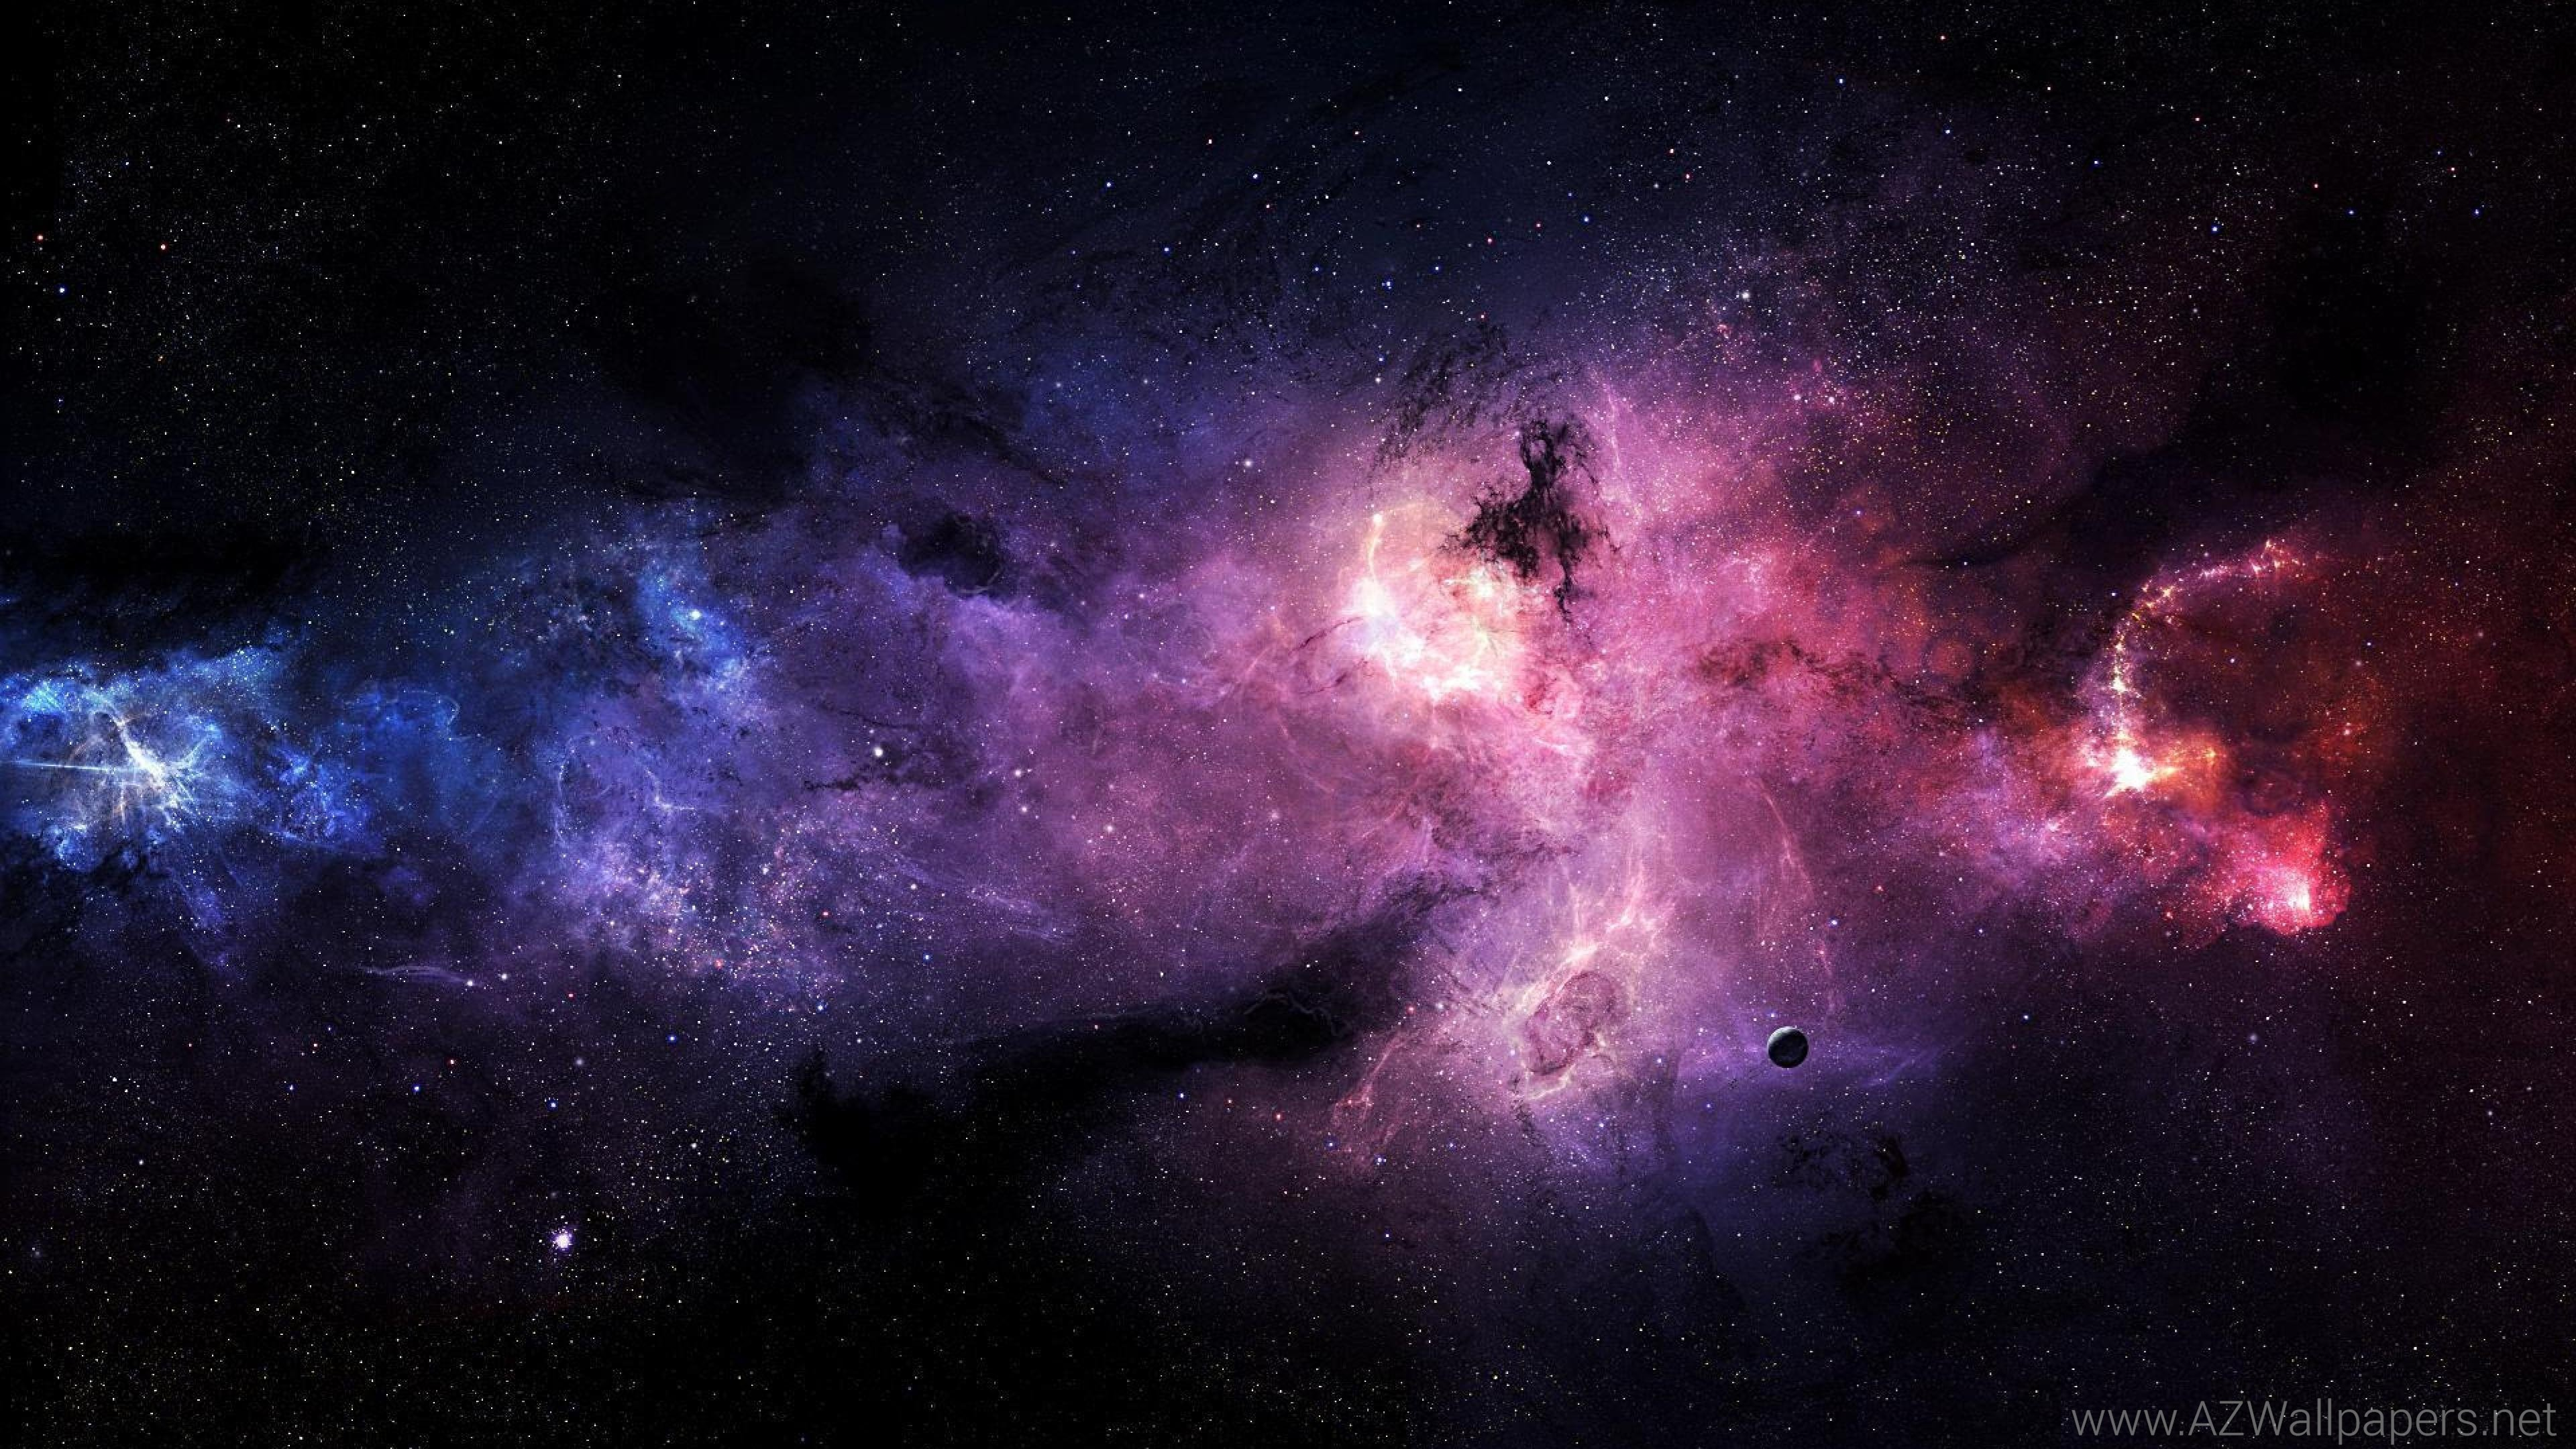 3840x2160 Download Real Space Wallpapers High Quality